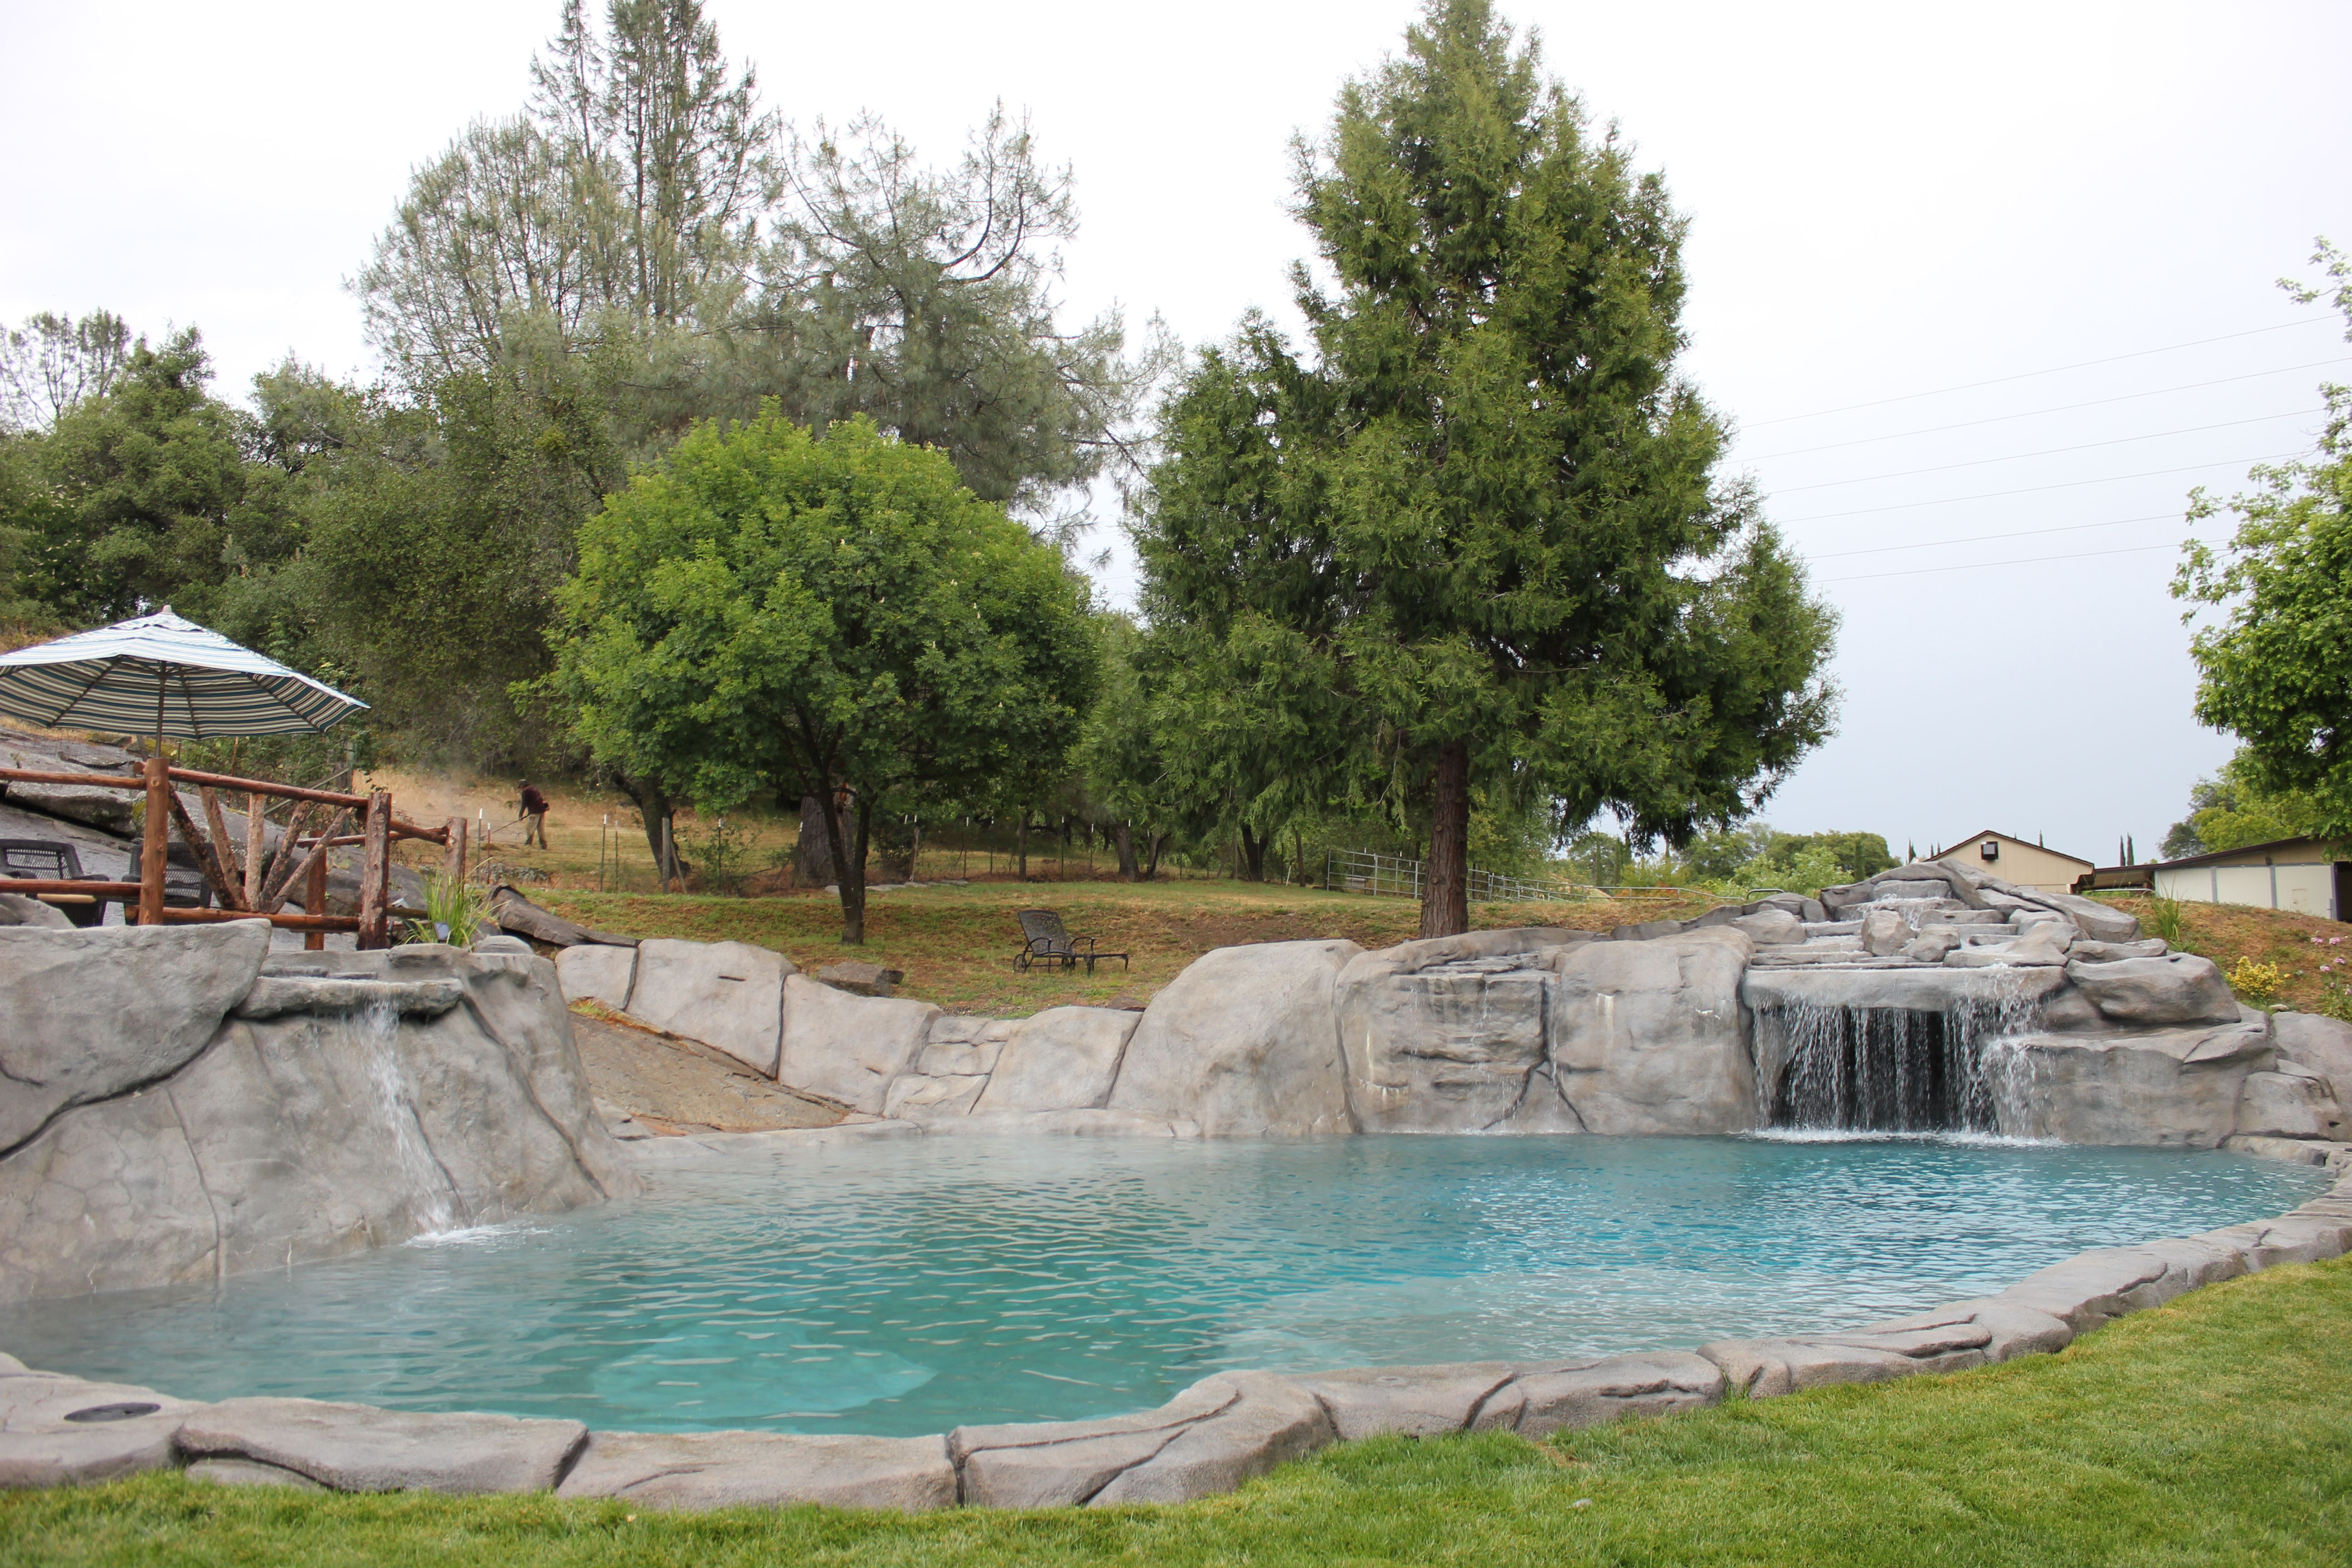 natural carved rock swimming pool. Swimming hole in your backyard ...